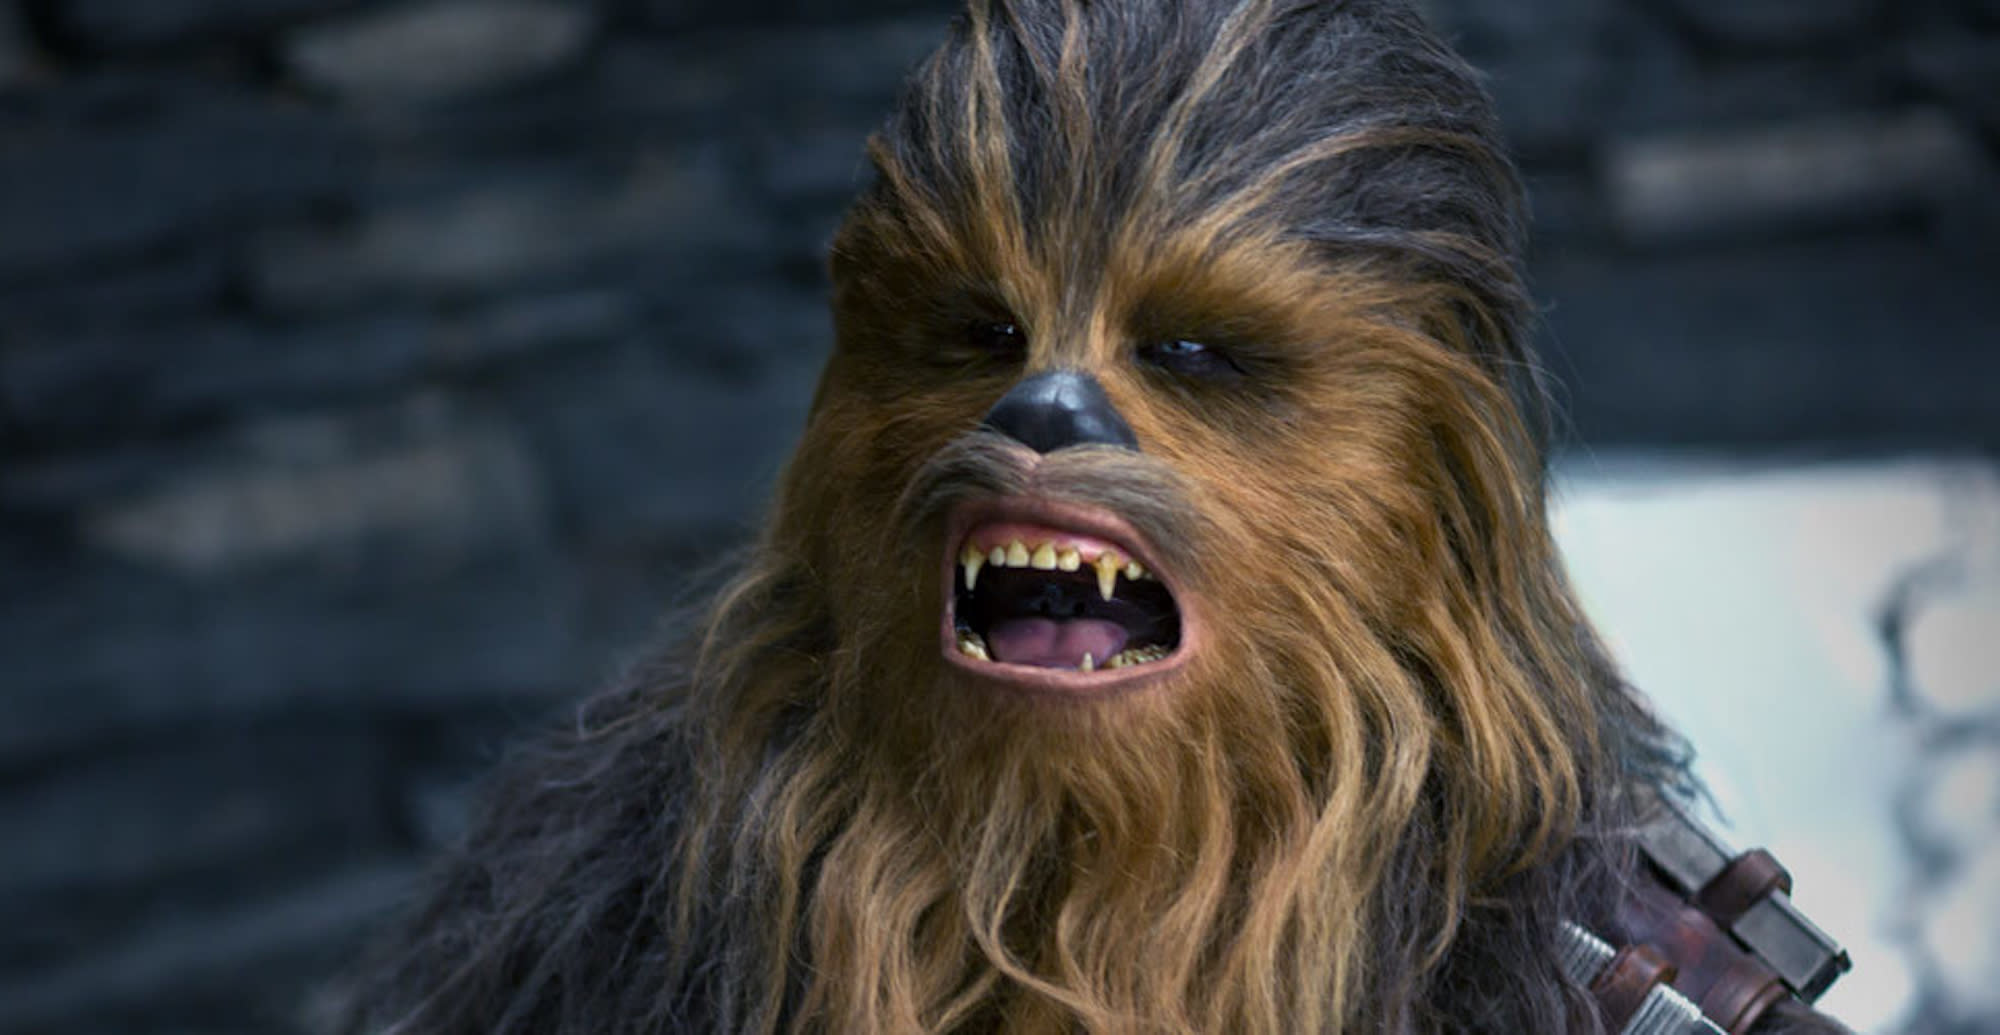 Watch Chewbacca answer burning fan questions about Han Solo, Rey, his missing medal, and more